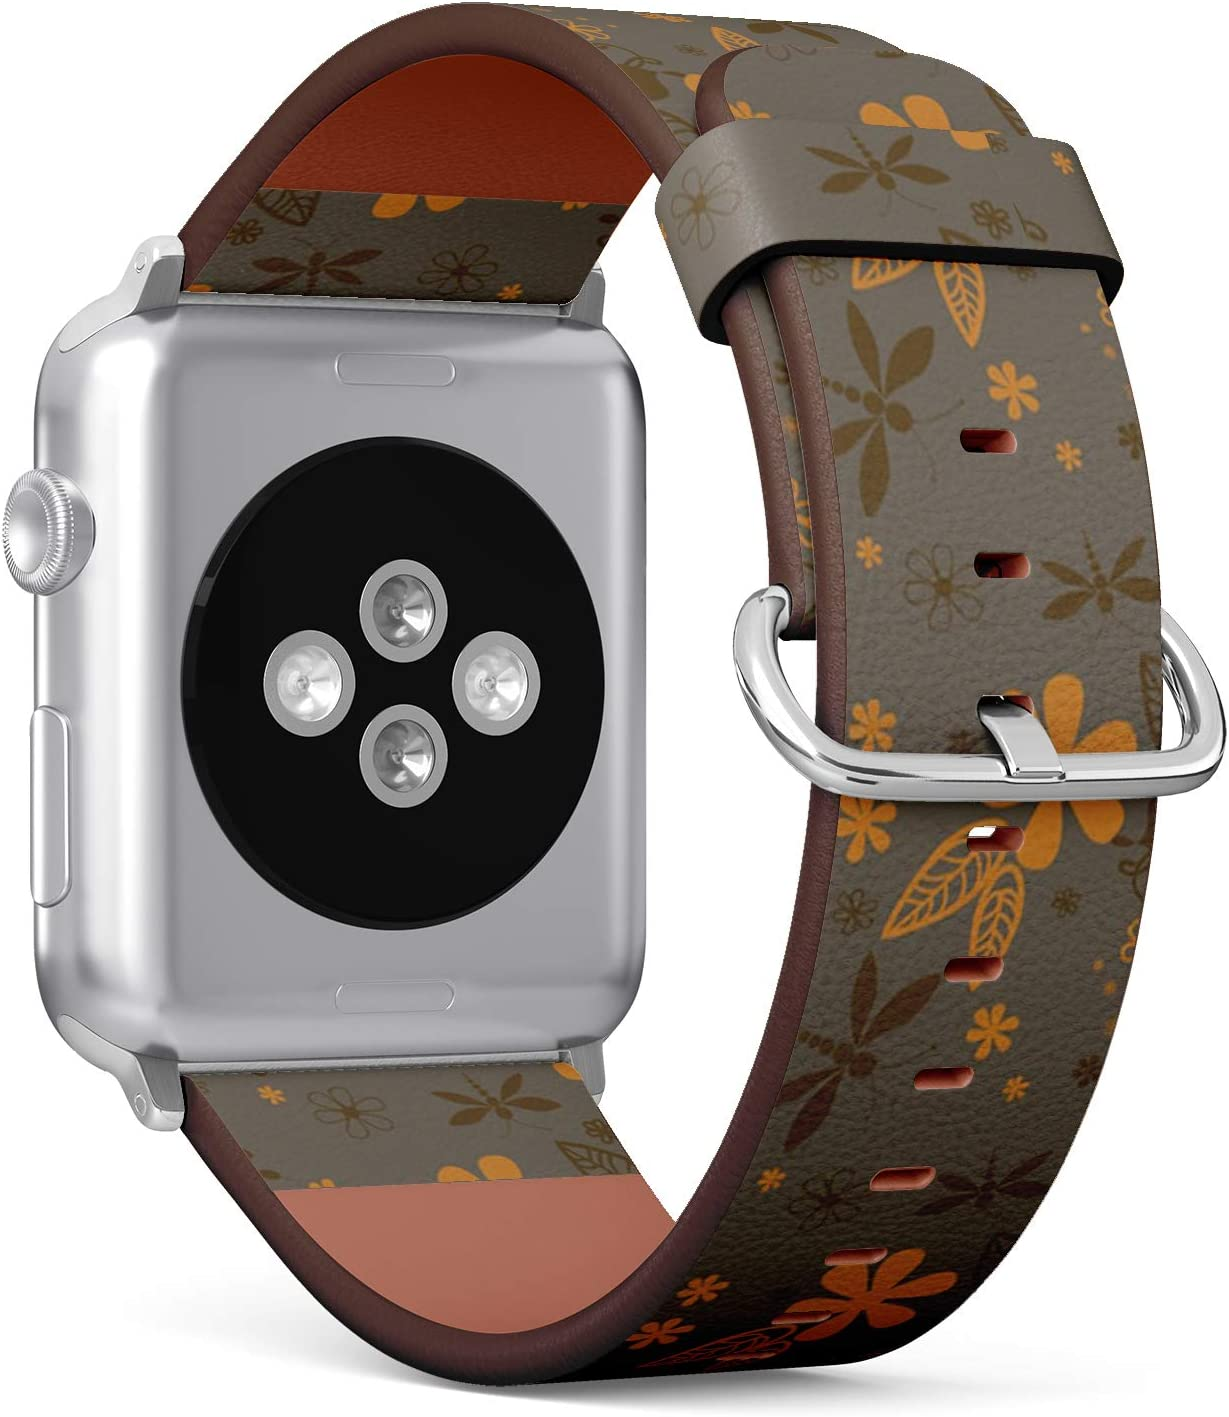 Compatible with Small Apple Watch 38mm & 40mm - (Series 5, 4, 3, 2, 1) Leather Watch Wrist Band Strap Bracelet with Stainless Steel Clasp and Adapters (Dragonflies Night)